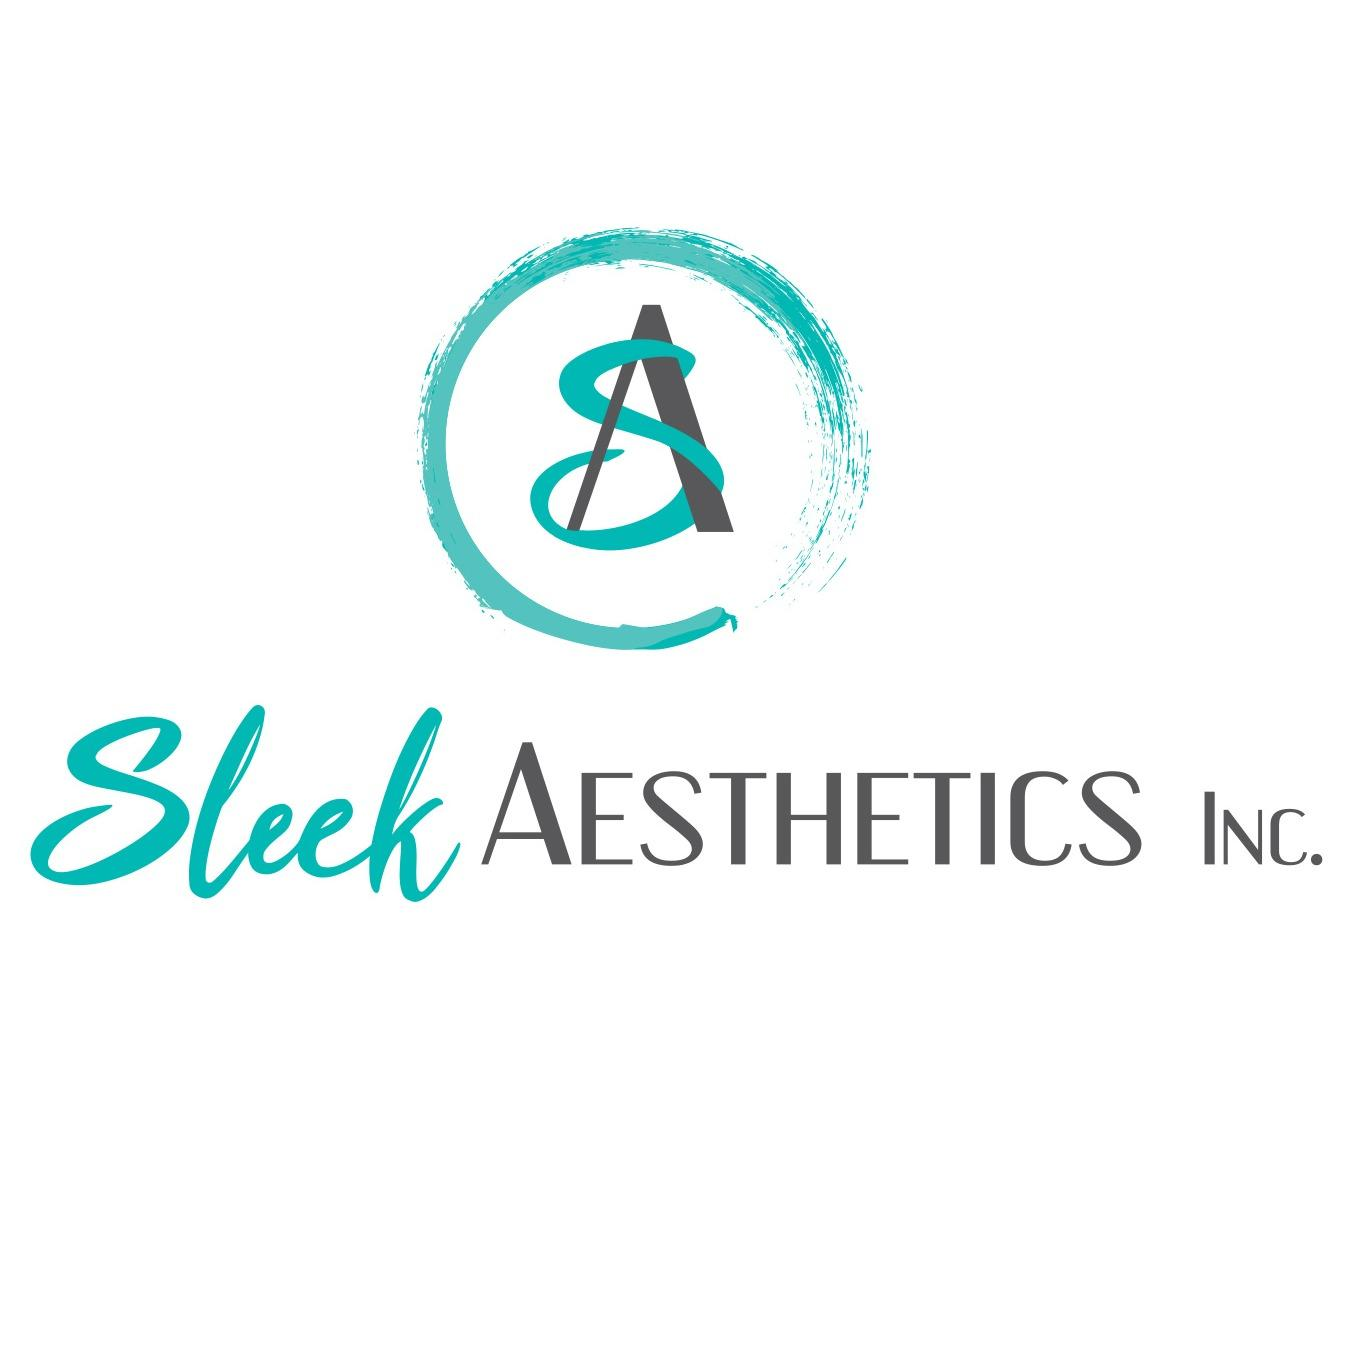 Sleek Aesthetics Inc.